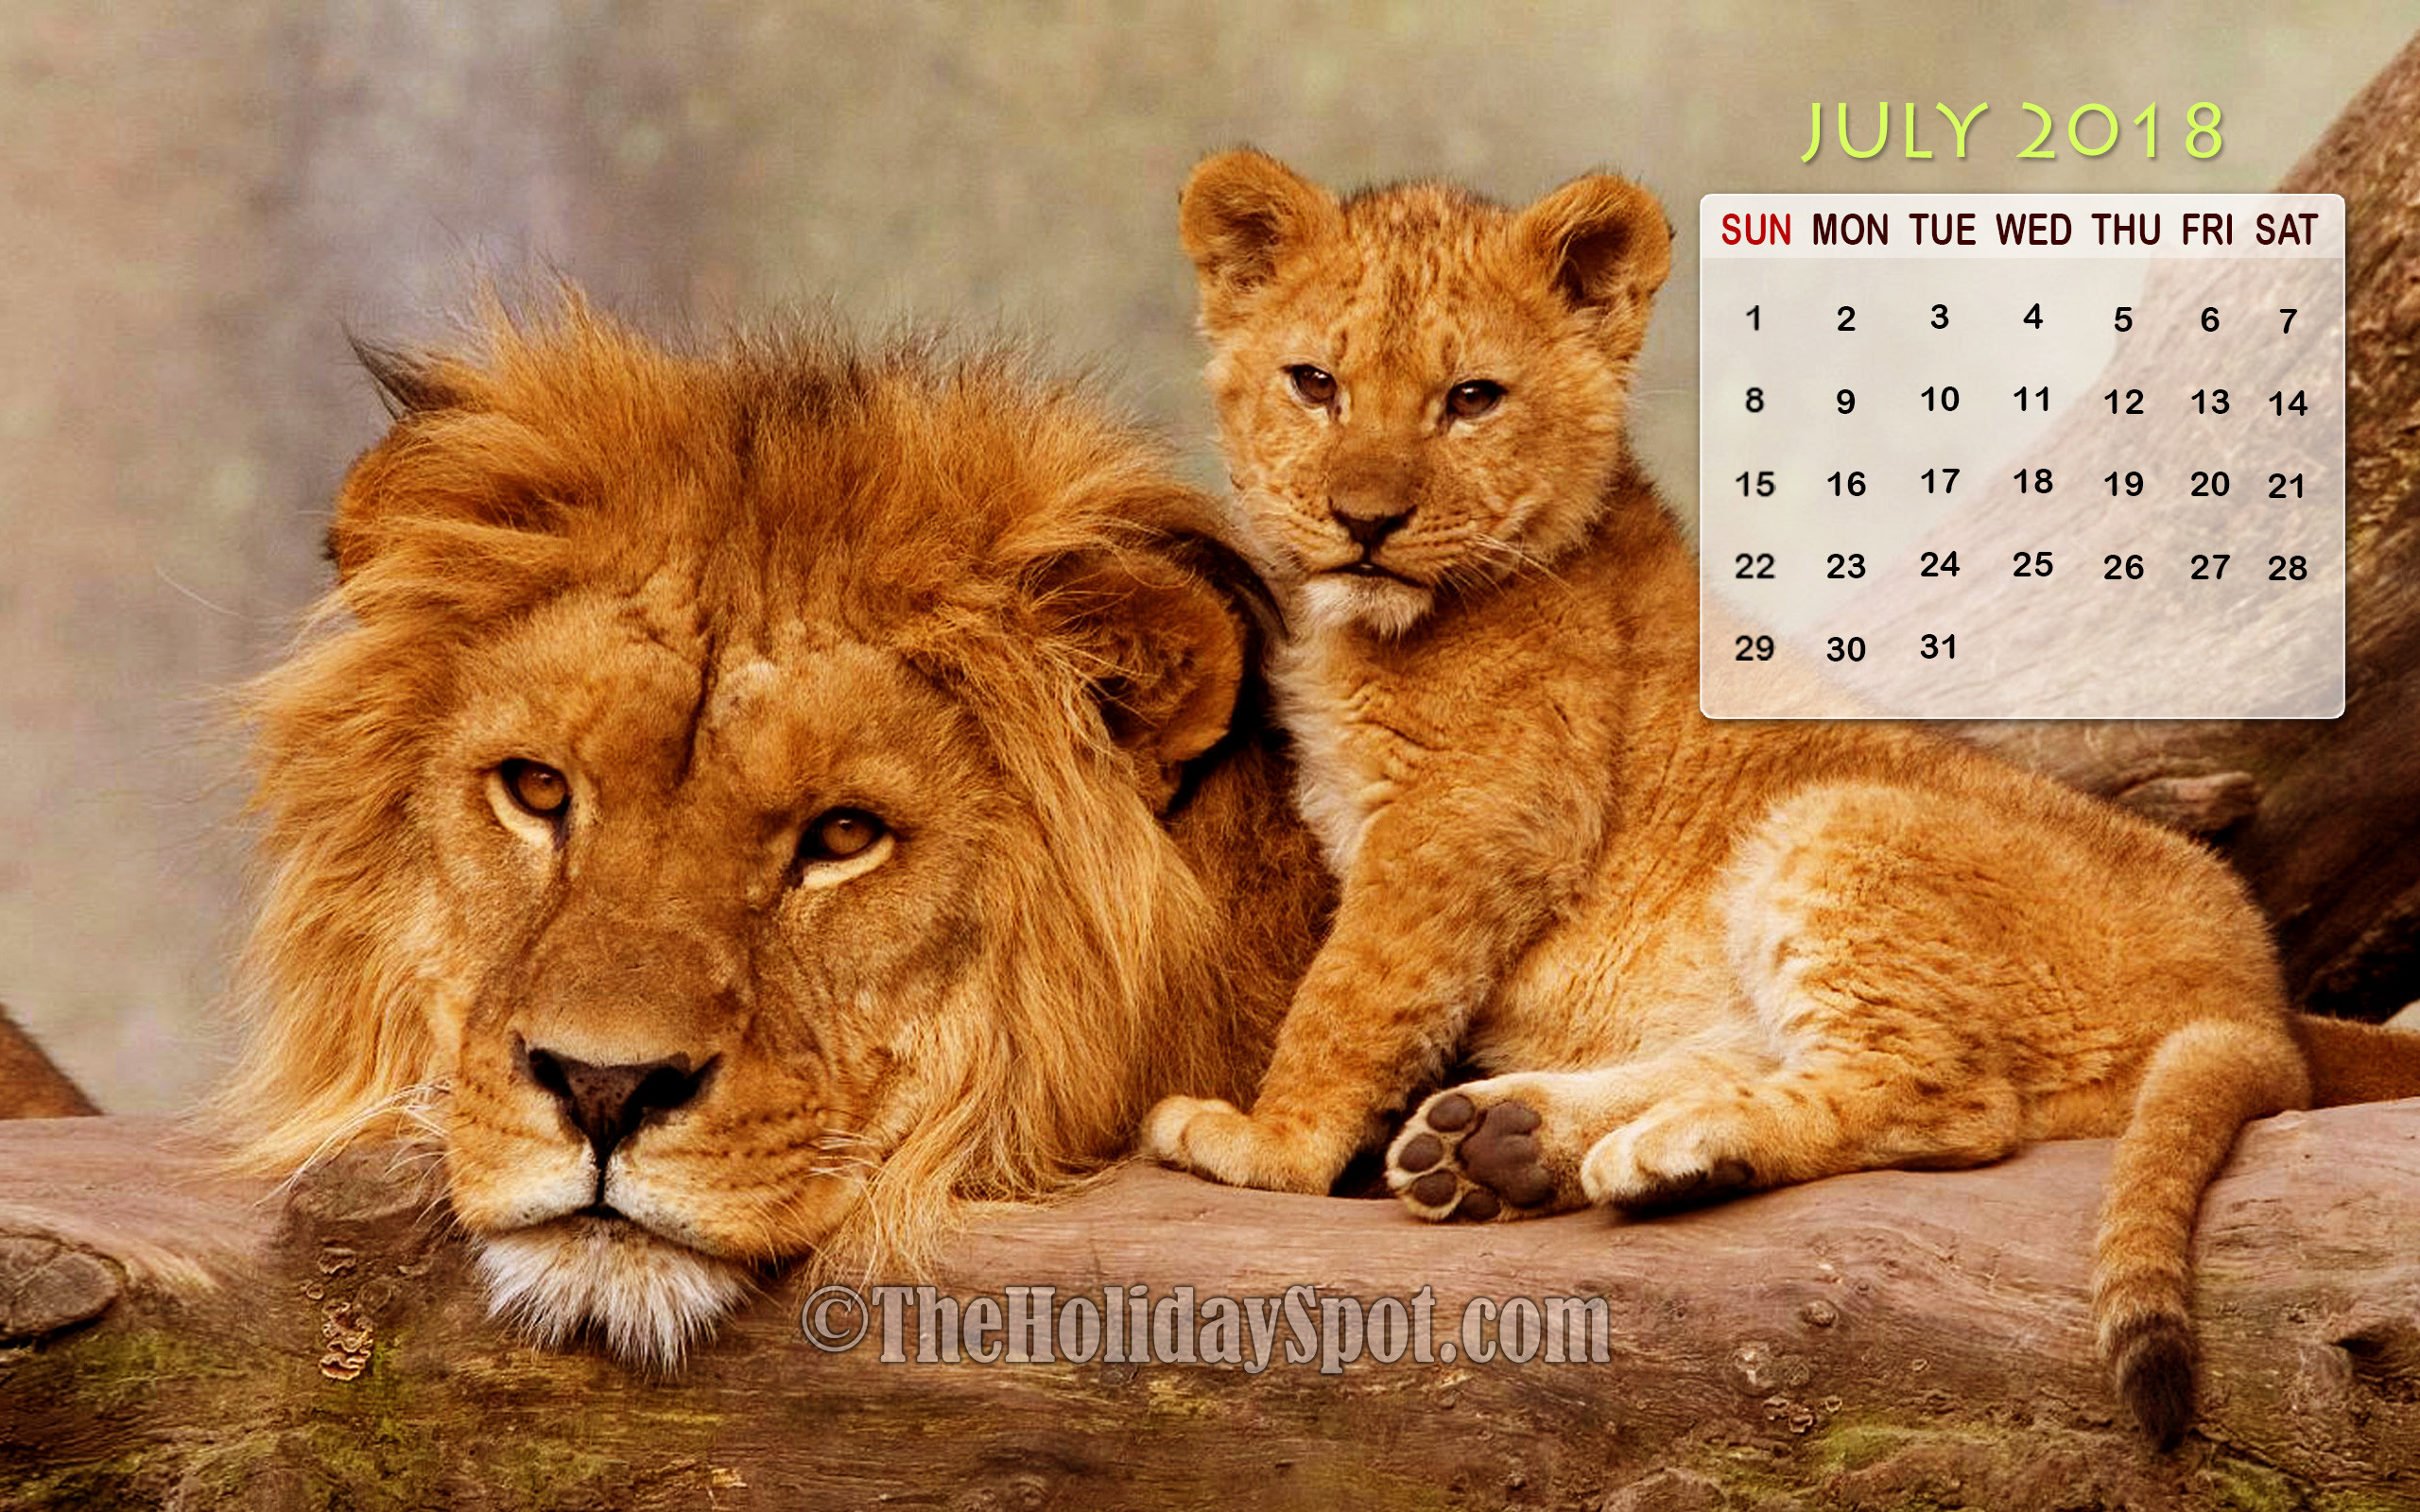 July 2018 Calendar Wallpapers 2560x1600